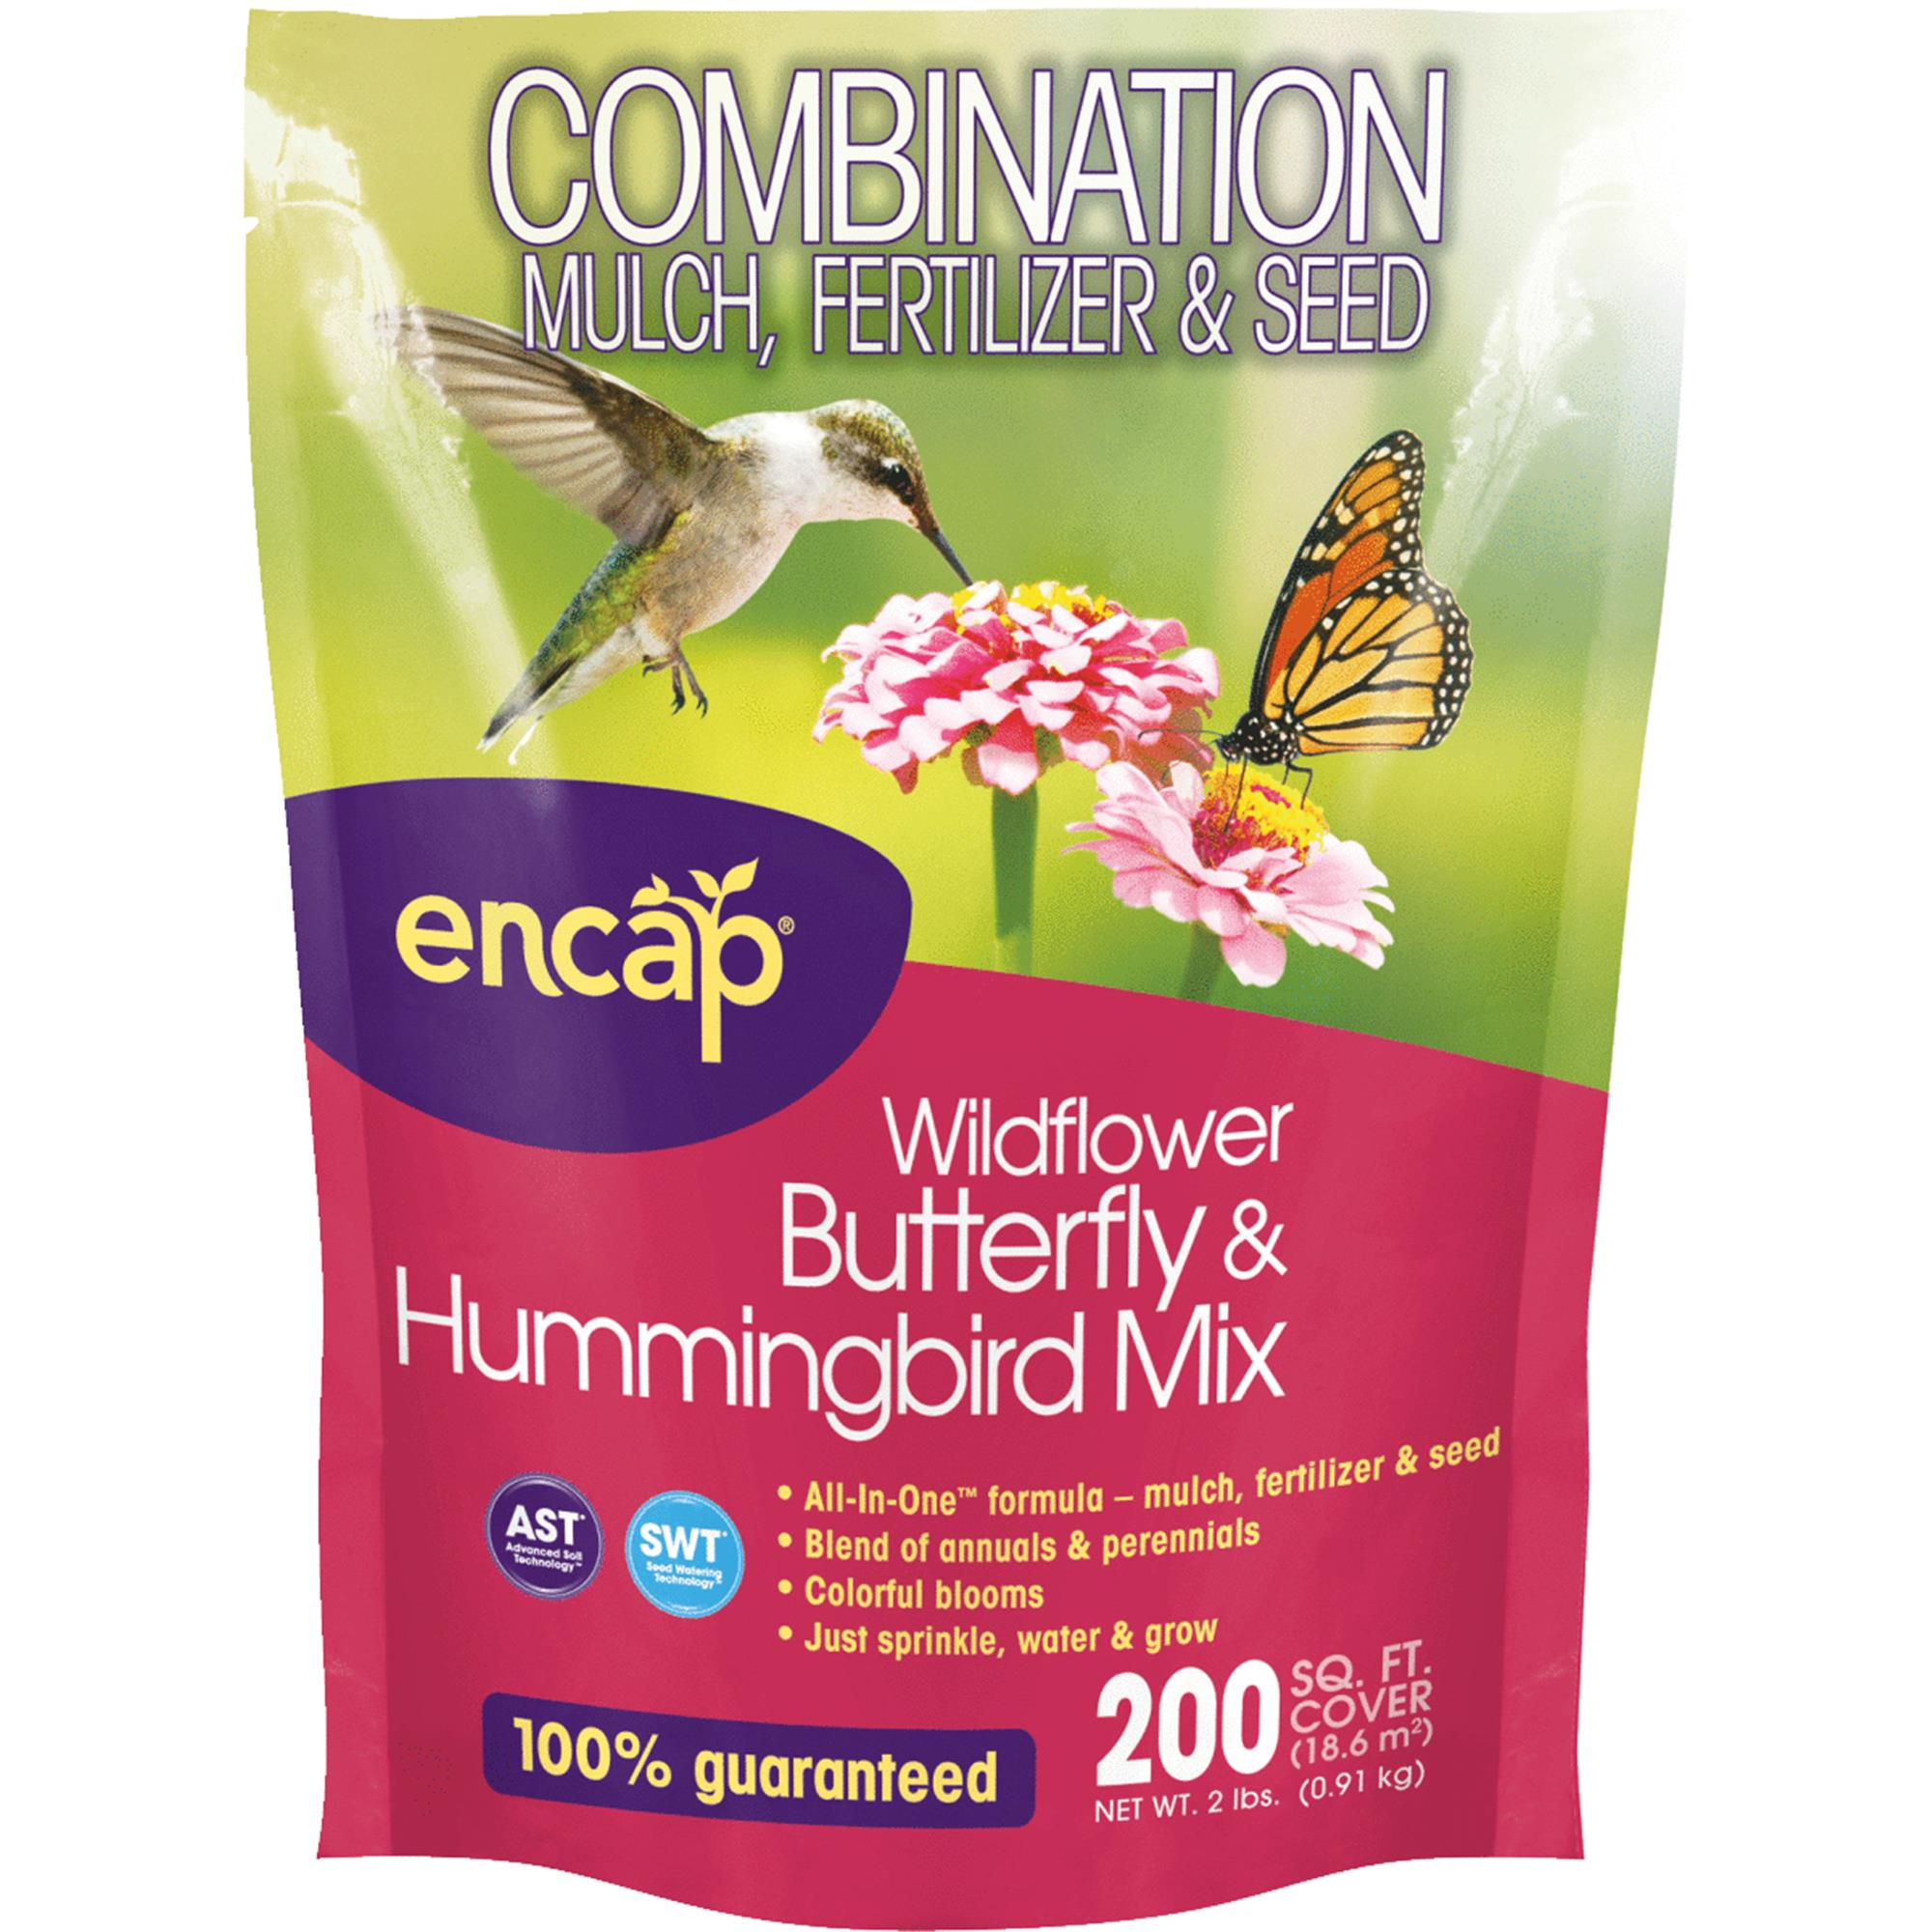 Encap All-In-One Butterfly & Hummingbird Wildflower Seed Mix